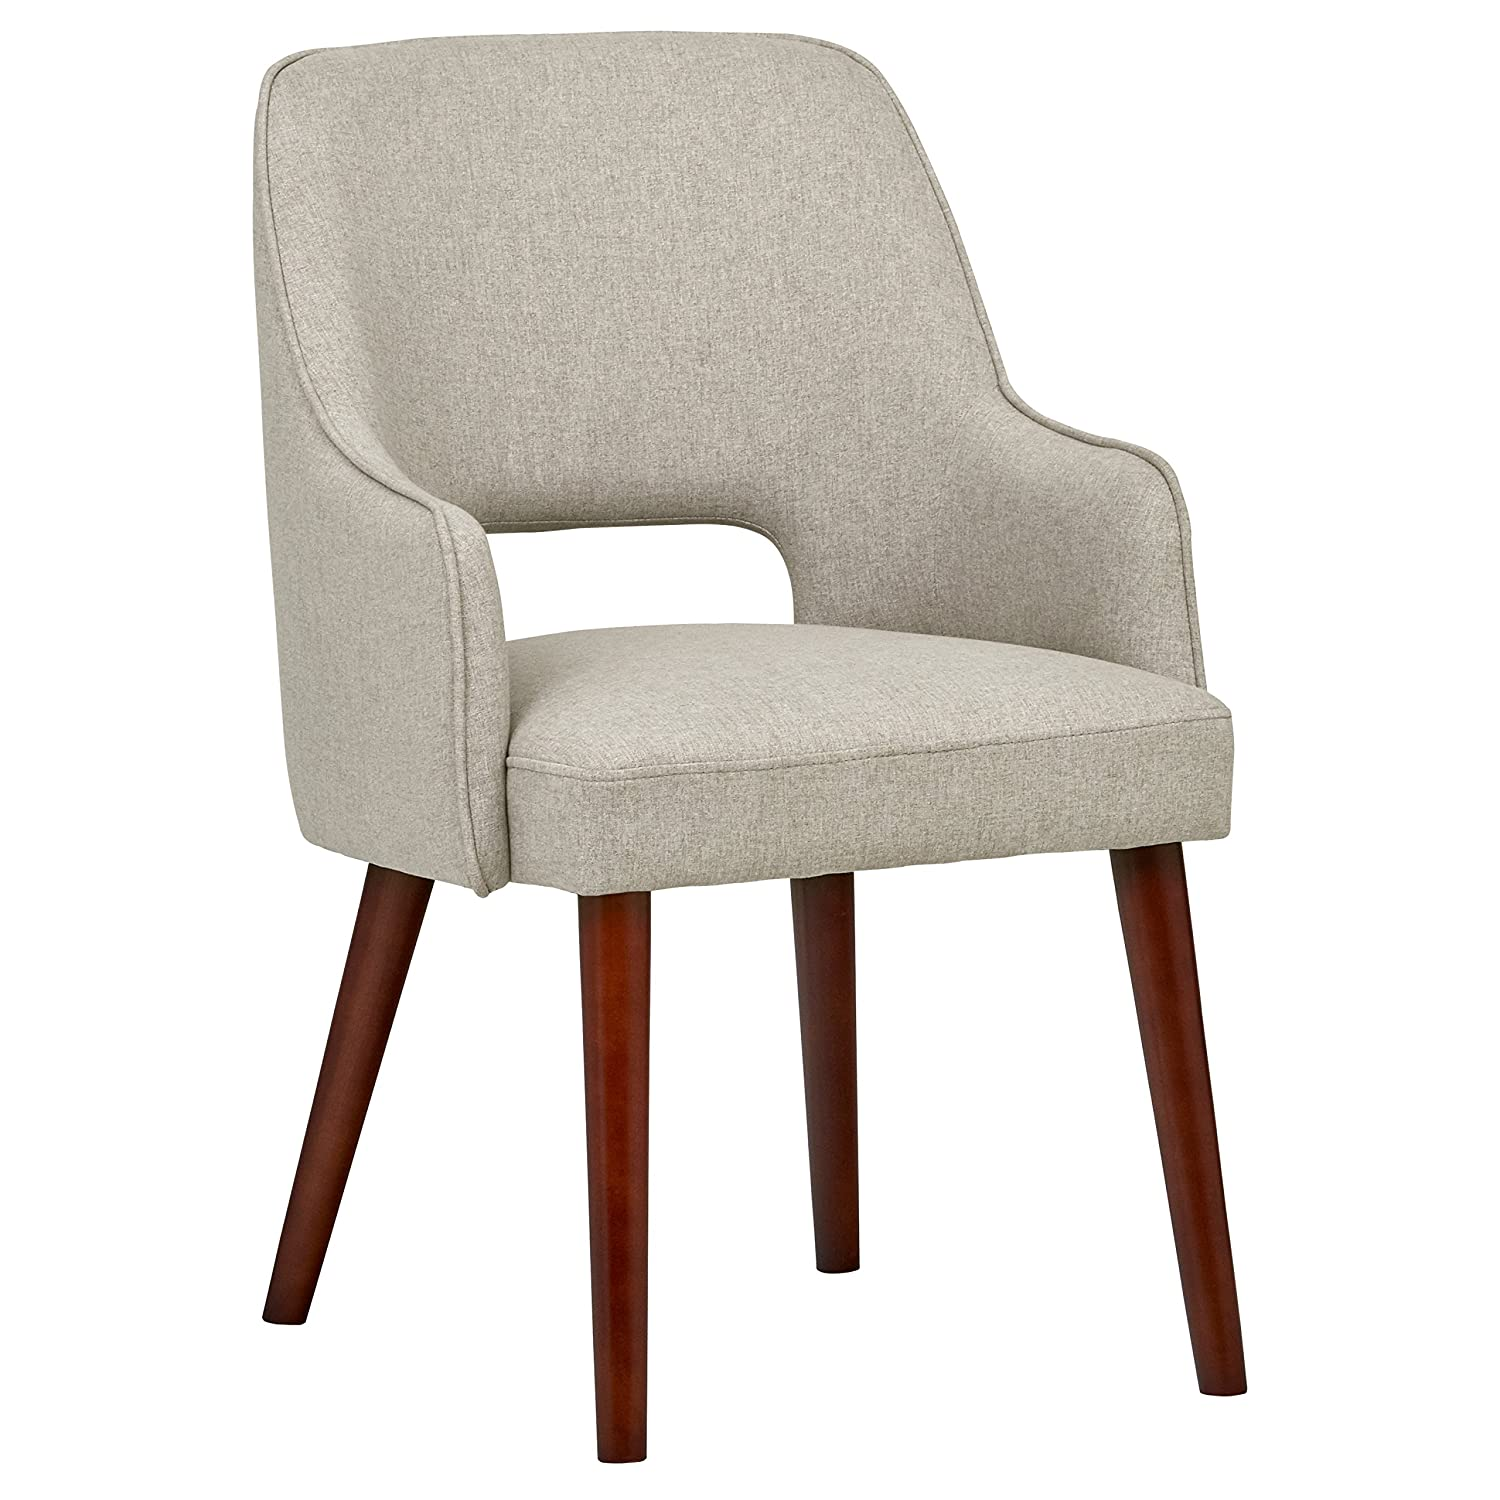 "Rivet Whidbey Mid-Century Modern Open Back Accent Kitchen Dining Room Chair, 22.8""W, Felt Grey"